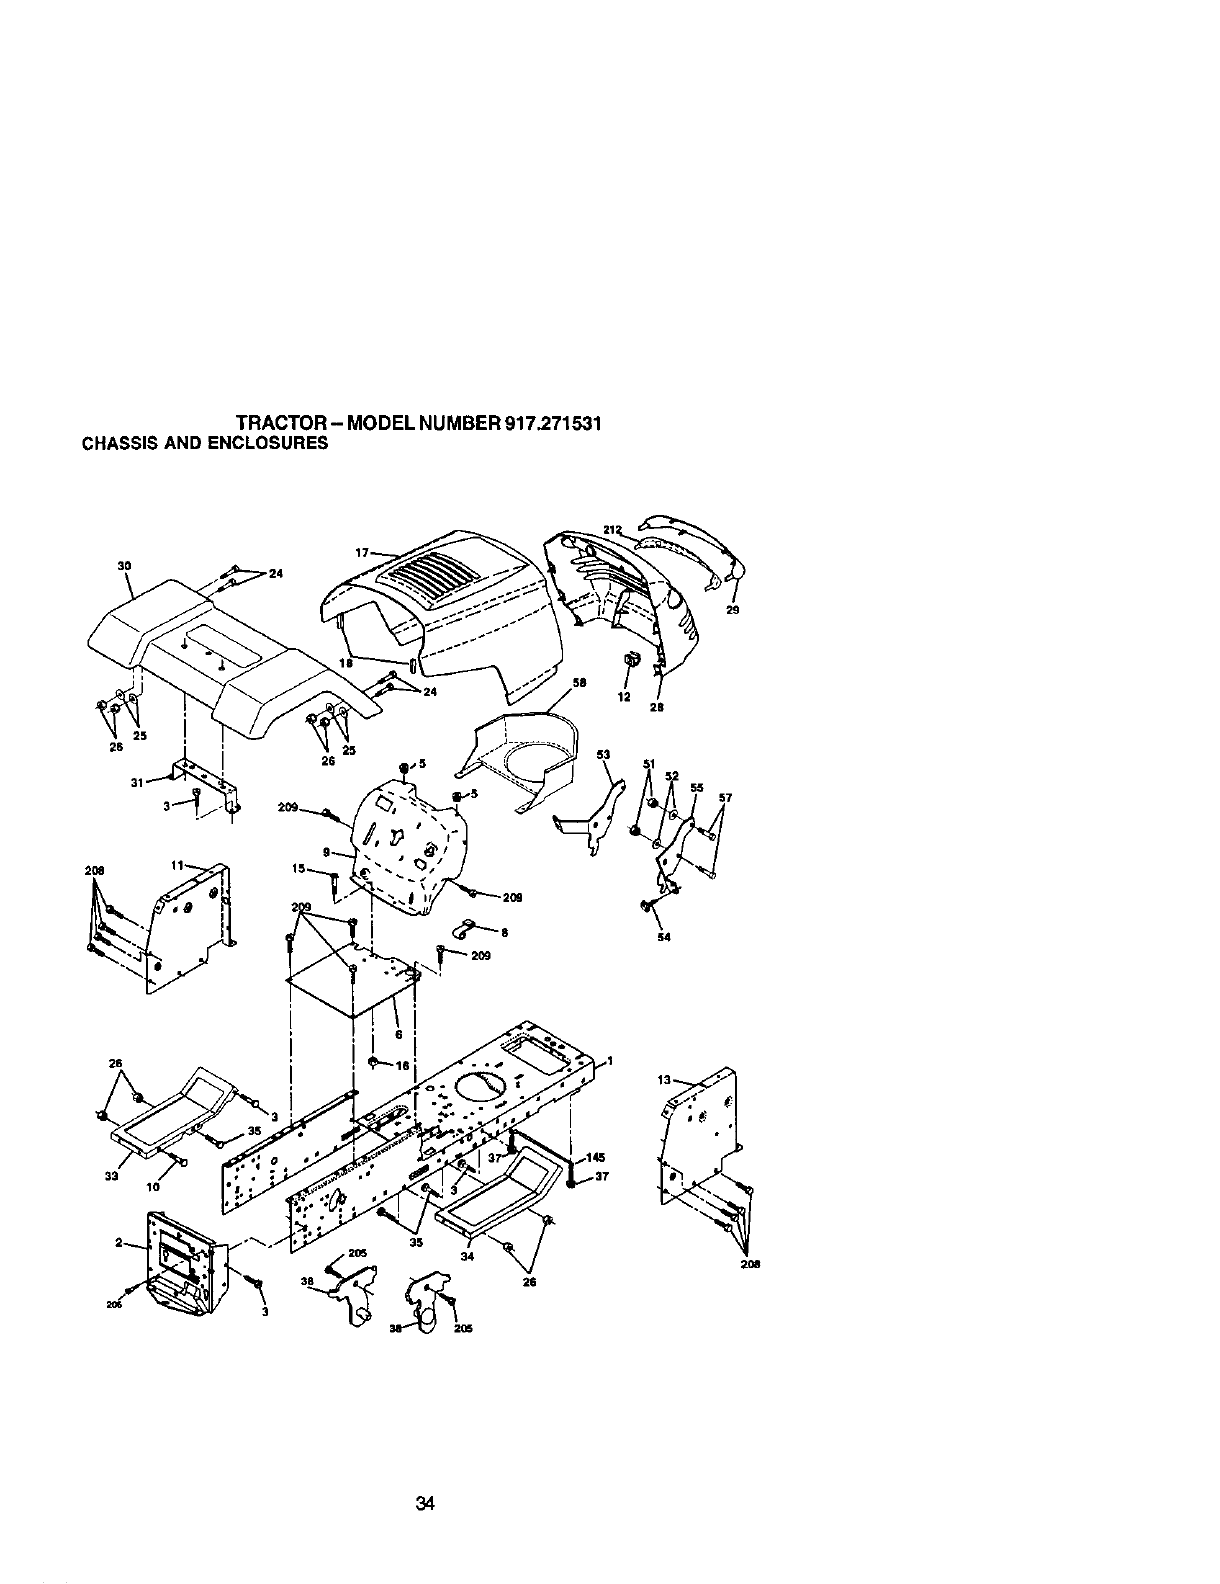 Tractor modelnumber917 271531